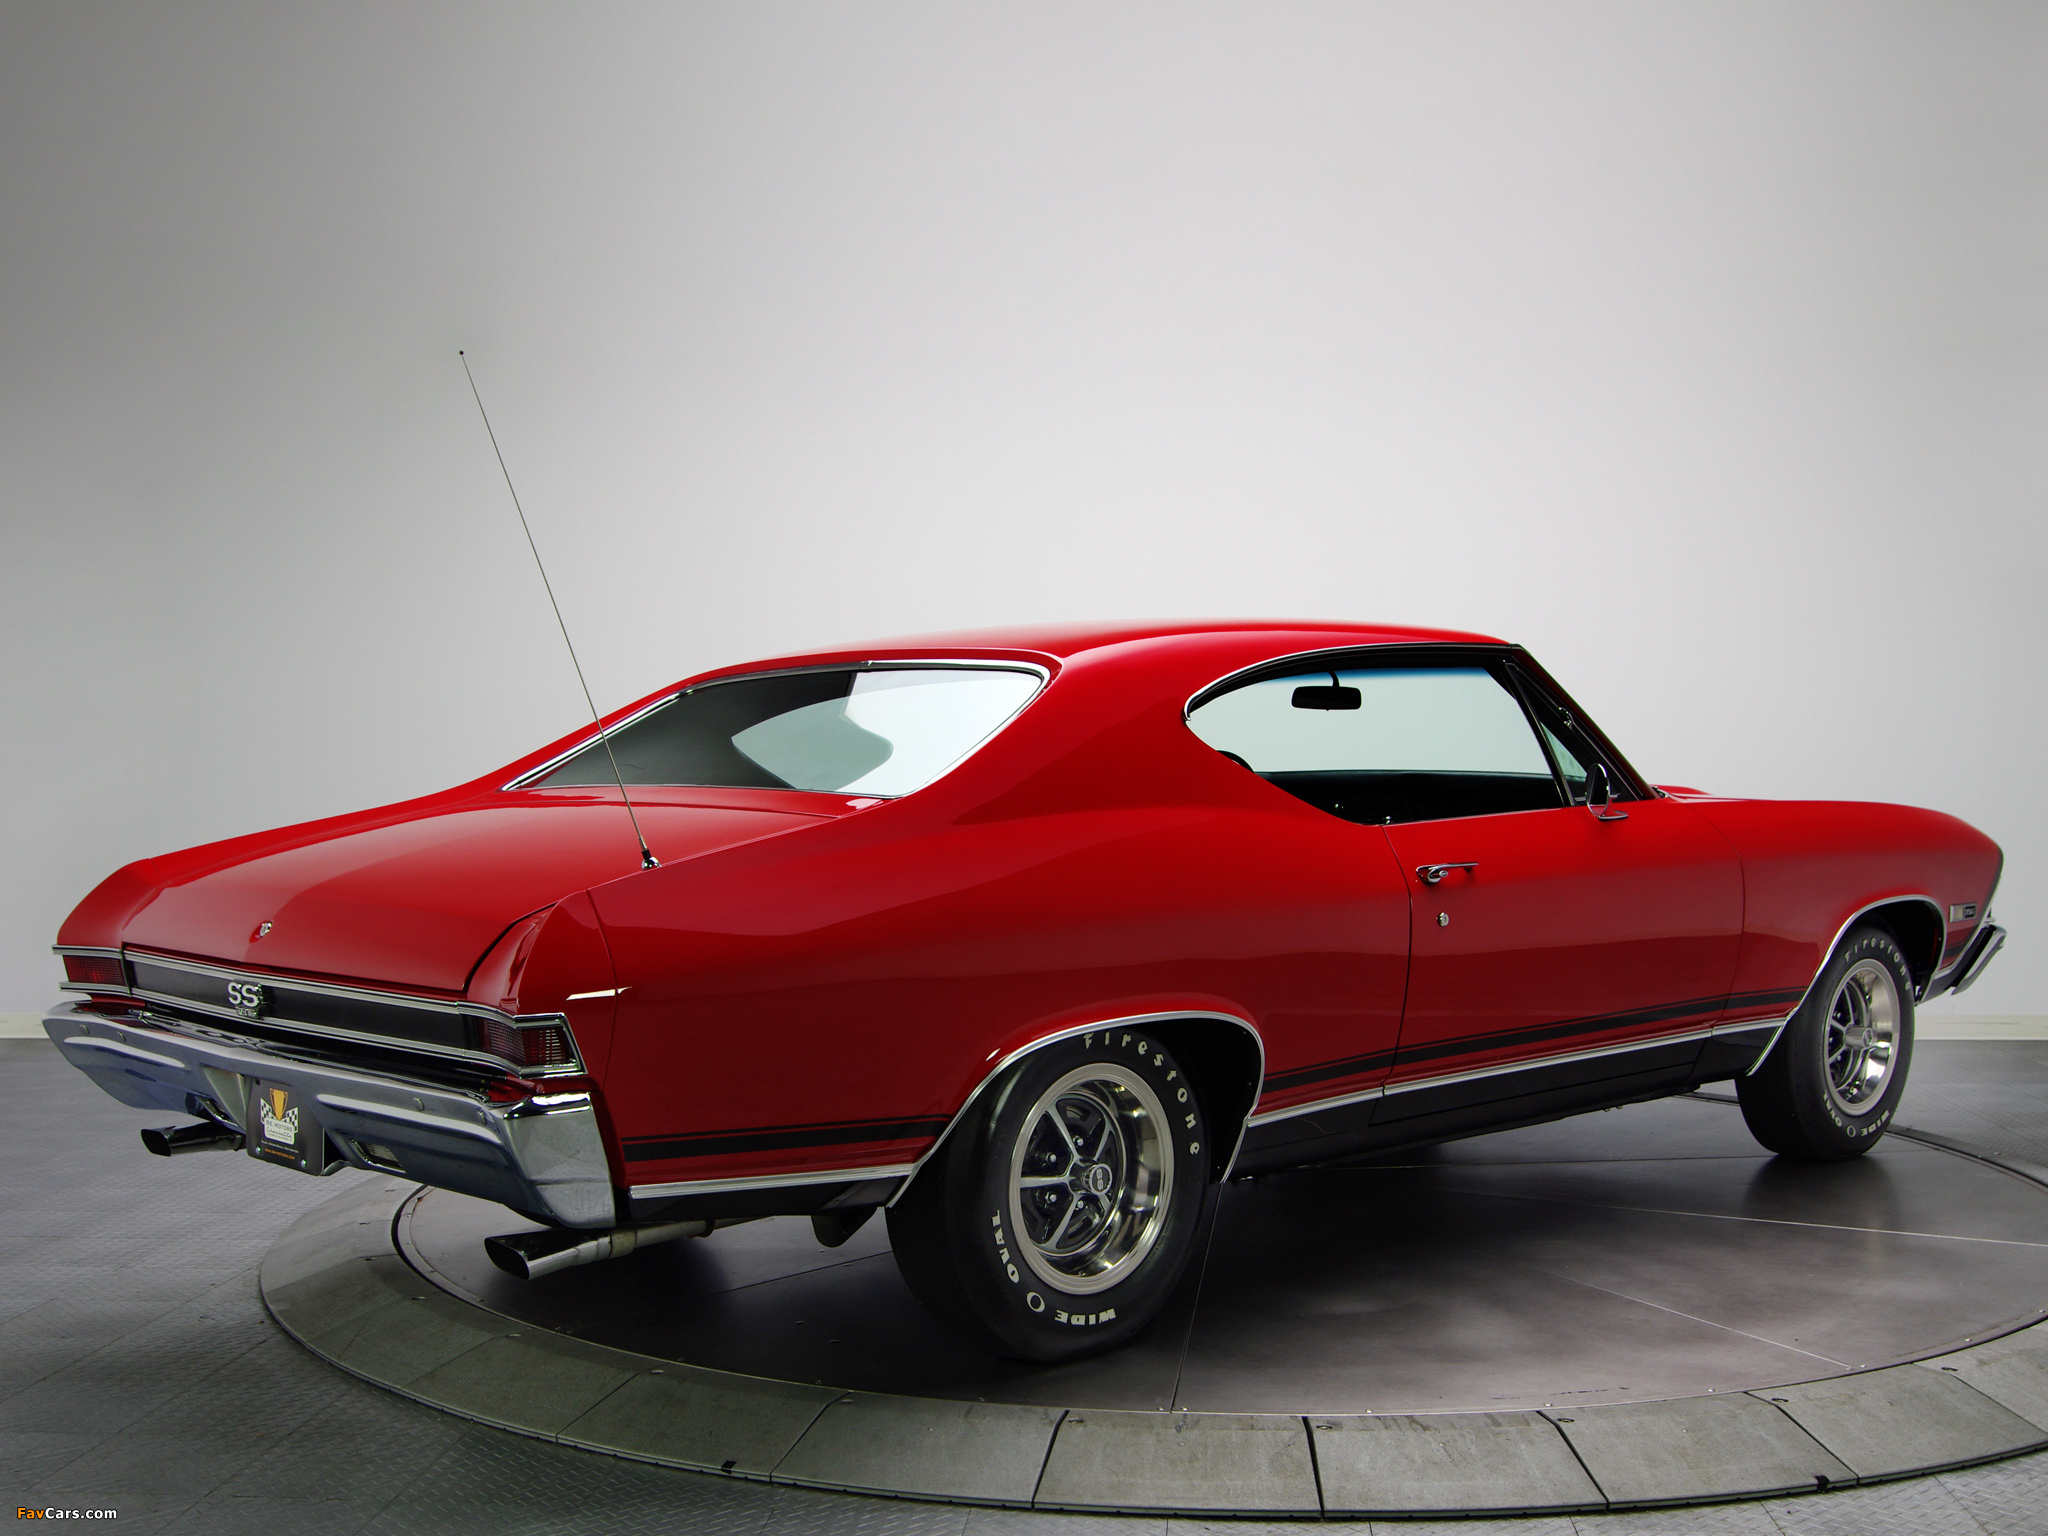 Amazing 1970 Chevelle Ss 454 Survivor besides Watch additionally 5508053033 moreover 1968 CHEVROLET CHEVELLE SS 2 DOOR HARDTOP 157727 additionally 1970 Chevy Monte Carlo Ss And Chevy Monte Carlo 1970. on chevy chevelle ss